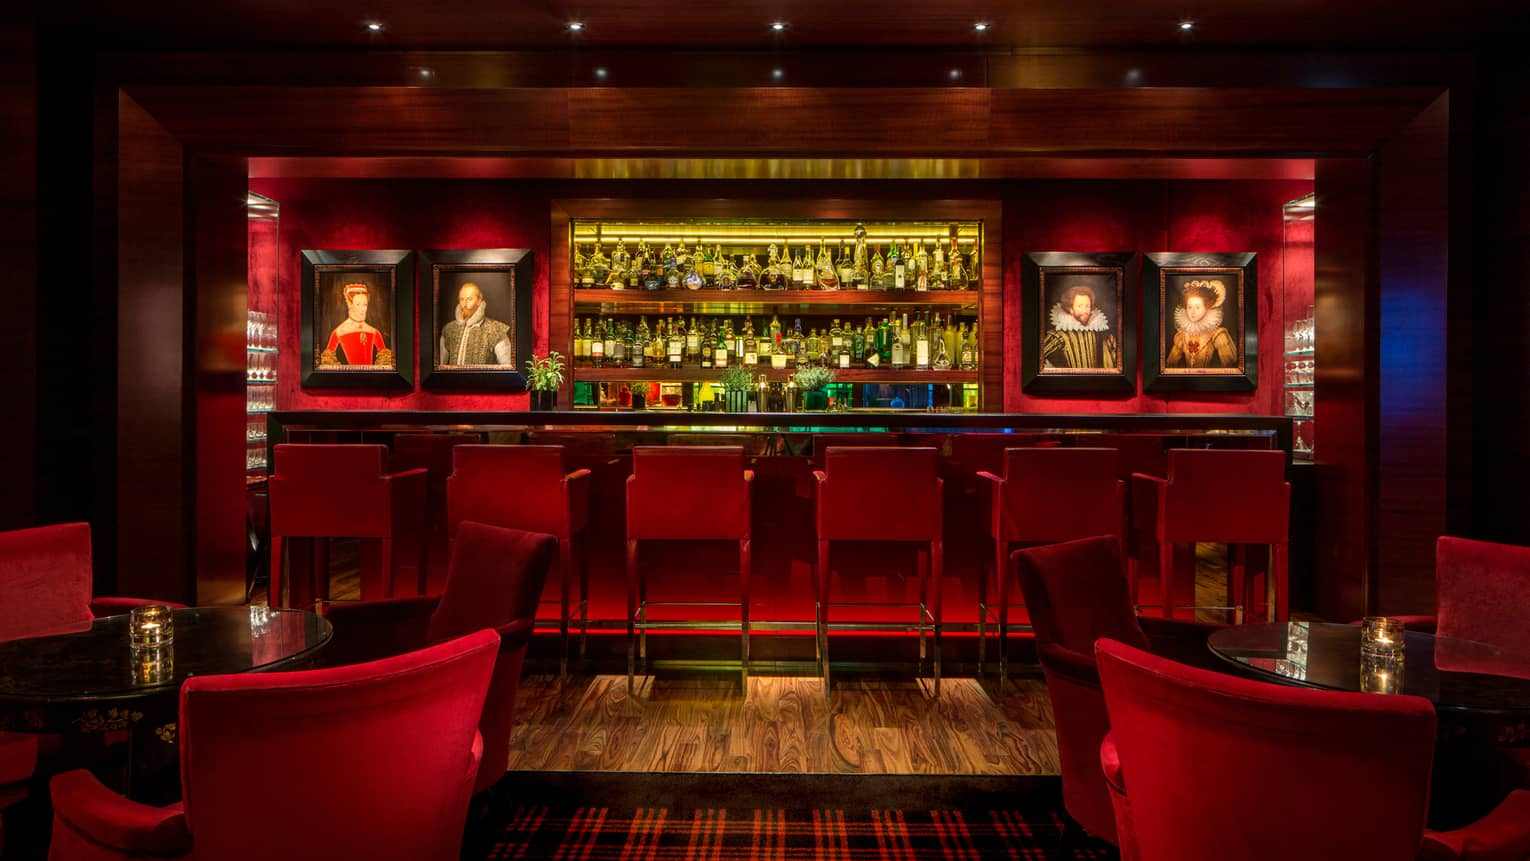 Dimly-lit Amaranto Bar with red accents, lighting, framed oil portraits on each side